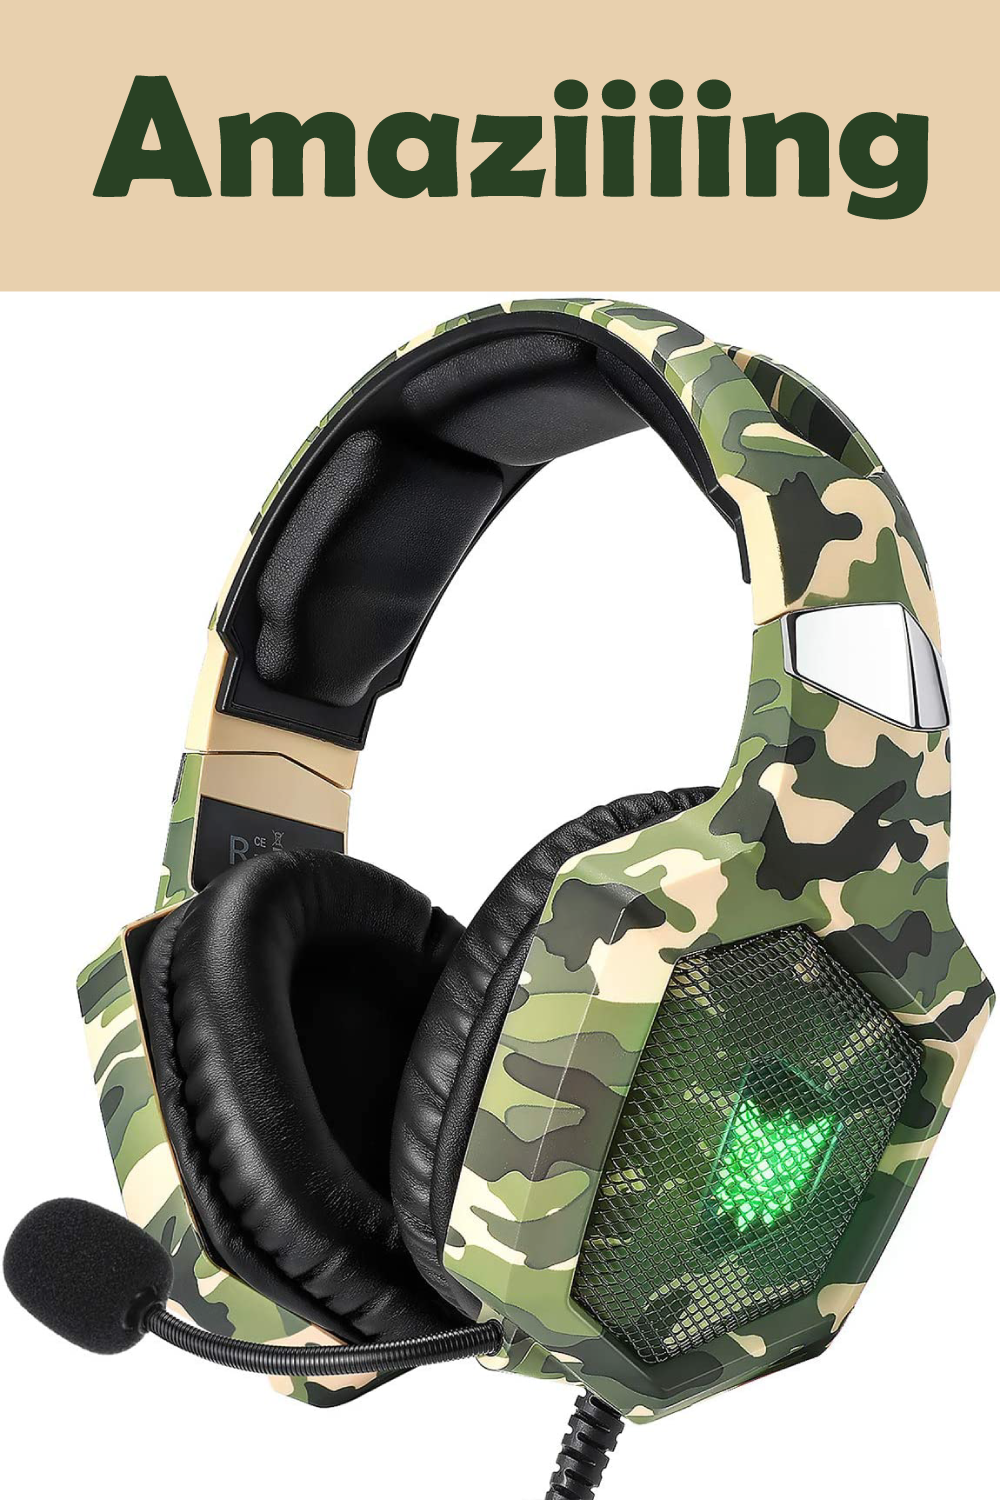 Astro A50 Gamestop : astro, gamestop, Gamestop, Headset, Ideas, Headset,, Gaming